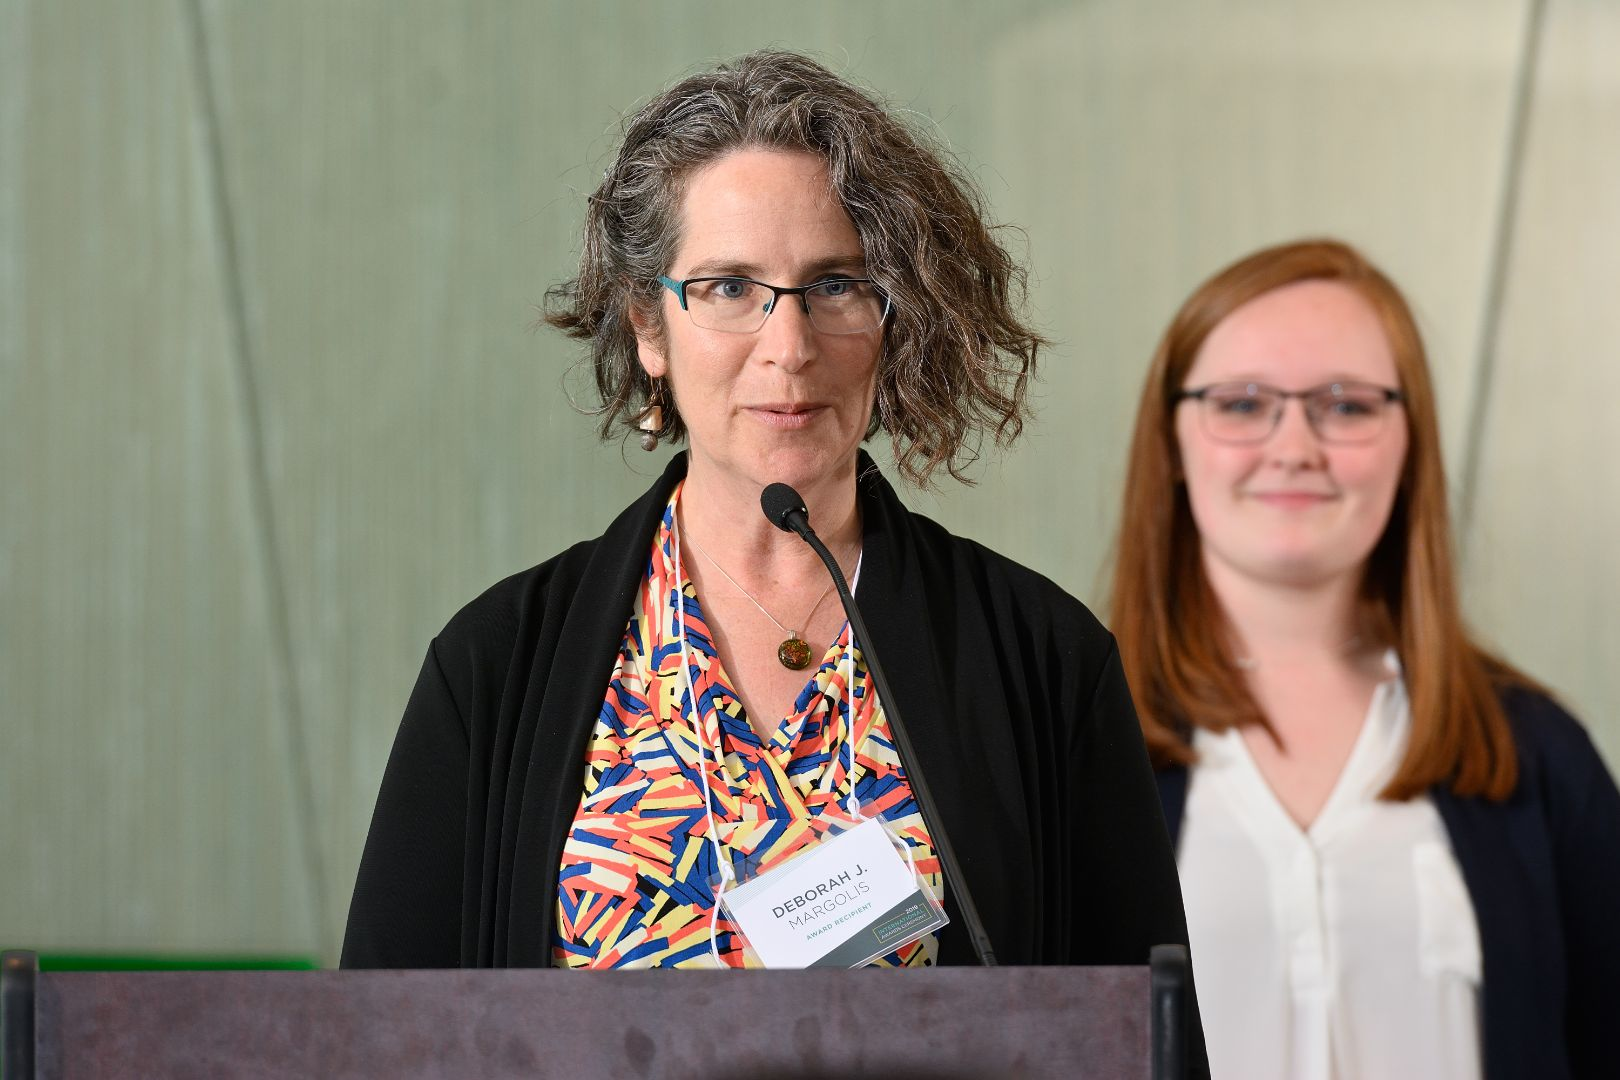 Deborah Margolis [female] standing at podium to receive award. MSU student Emily Skupin stands behind her.